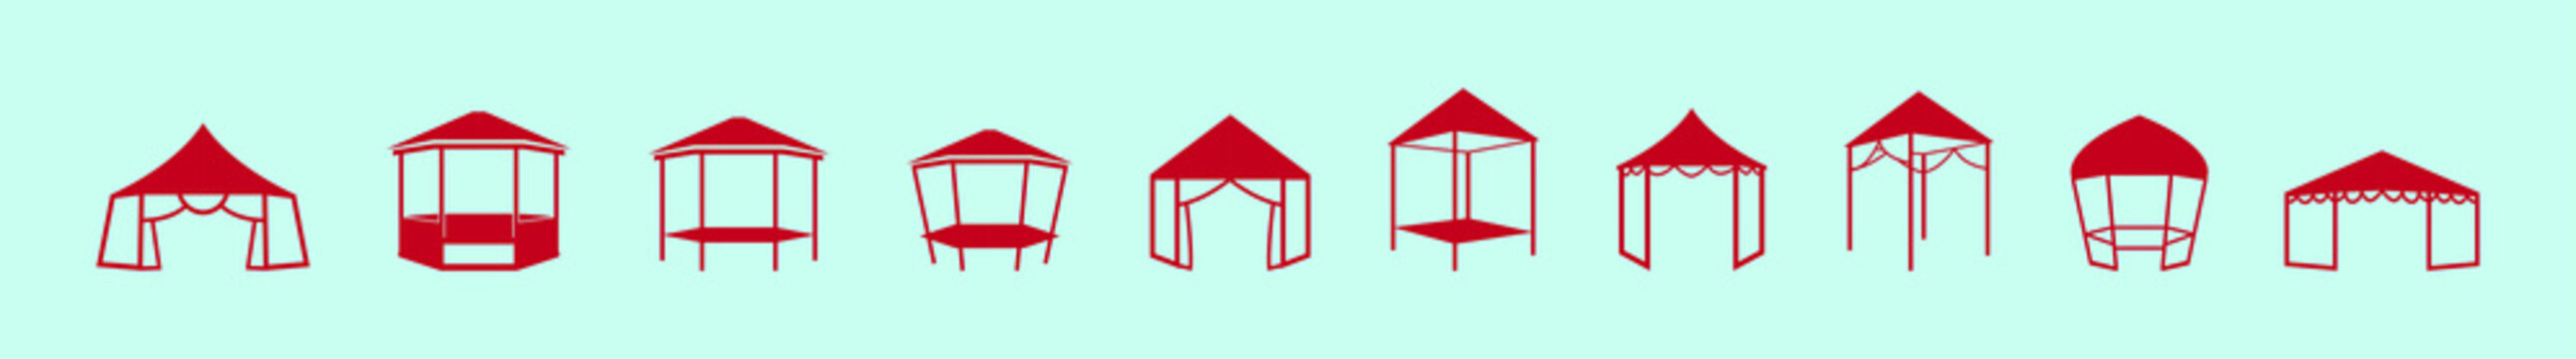 set of gazebo cartoon icon design template with various models. vector illustration isolated on blue background